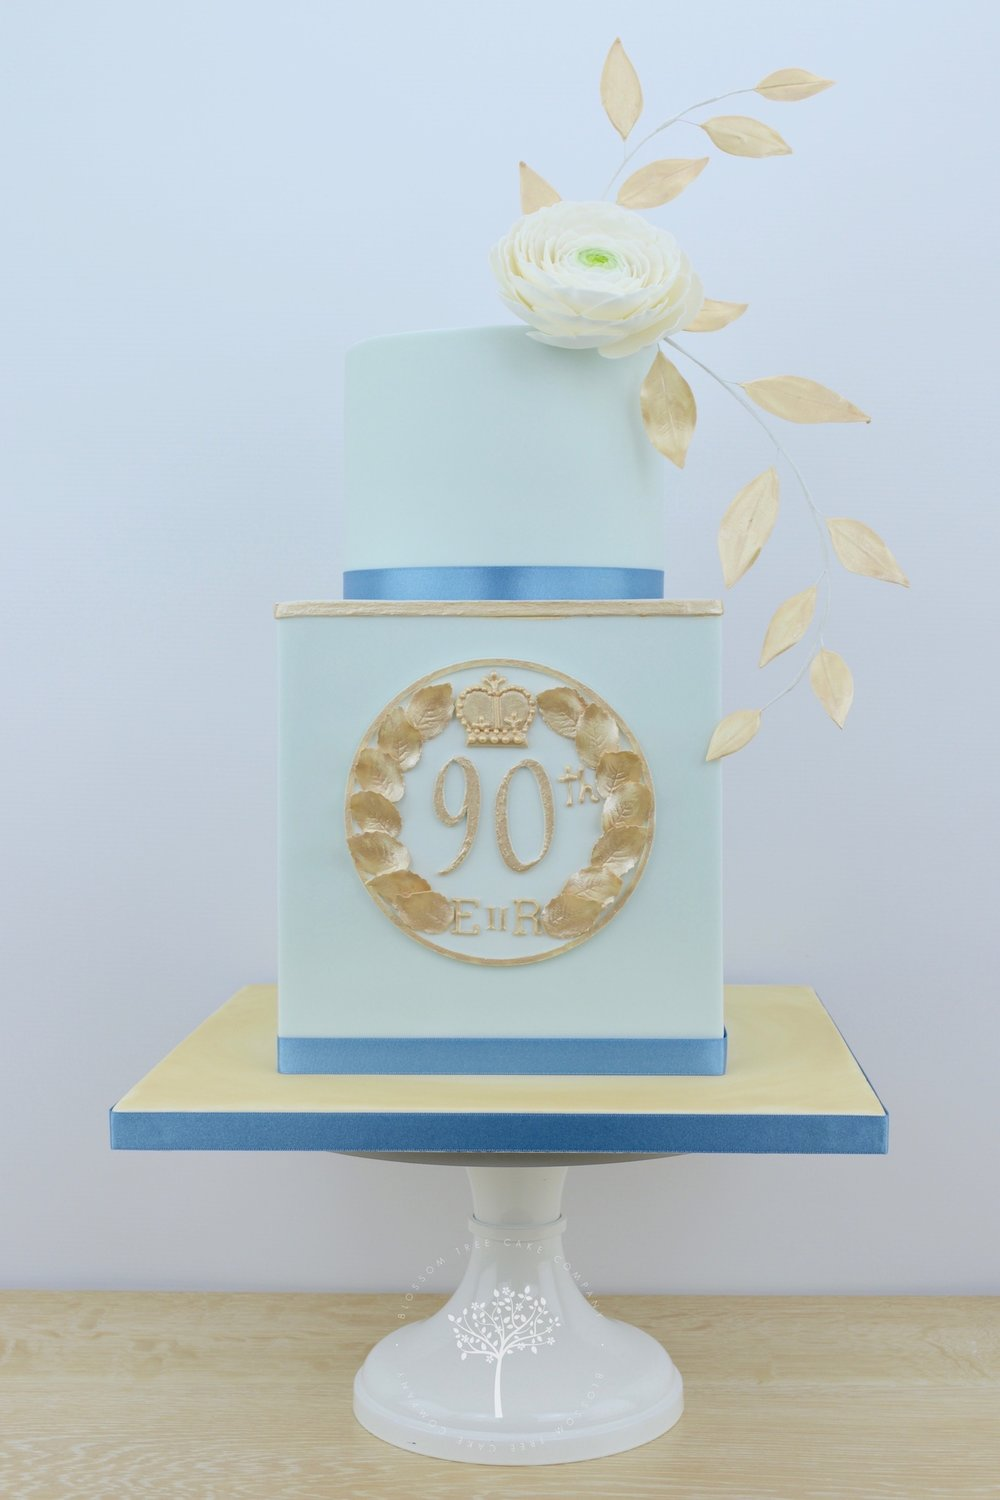 Queen's 90th Birthday Goldsborough Hall Garden Party cake by Blossom Tree Cake Company Harrogate North Yorkshire.jpg